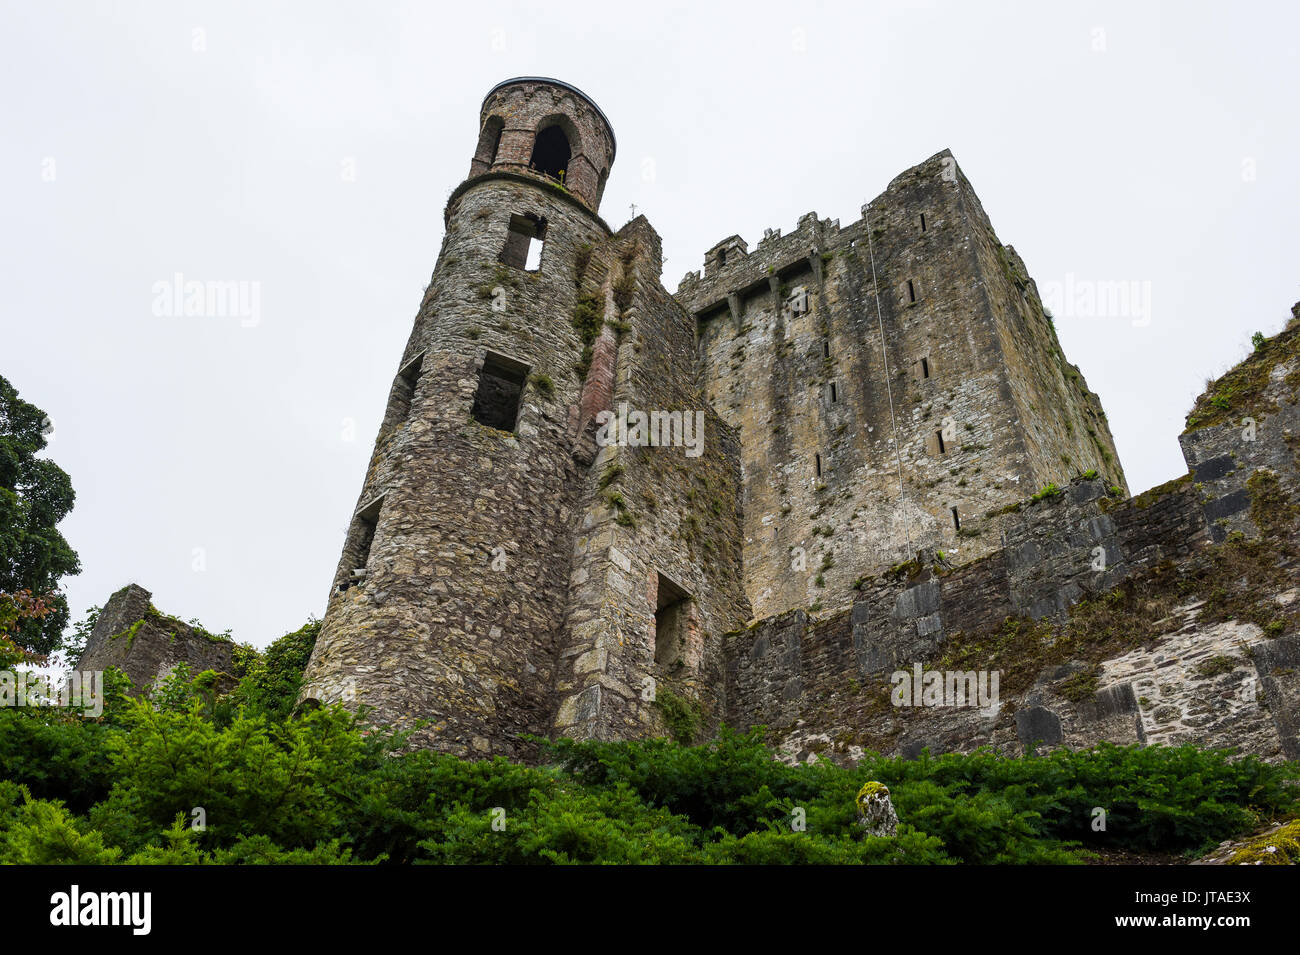 Blarney Castle, Blarney, County Cork, Munster, Republic of Ireland, Europe Stock Photo